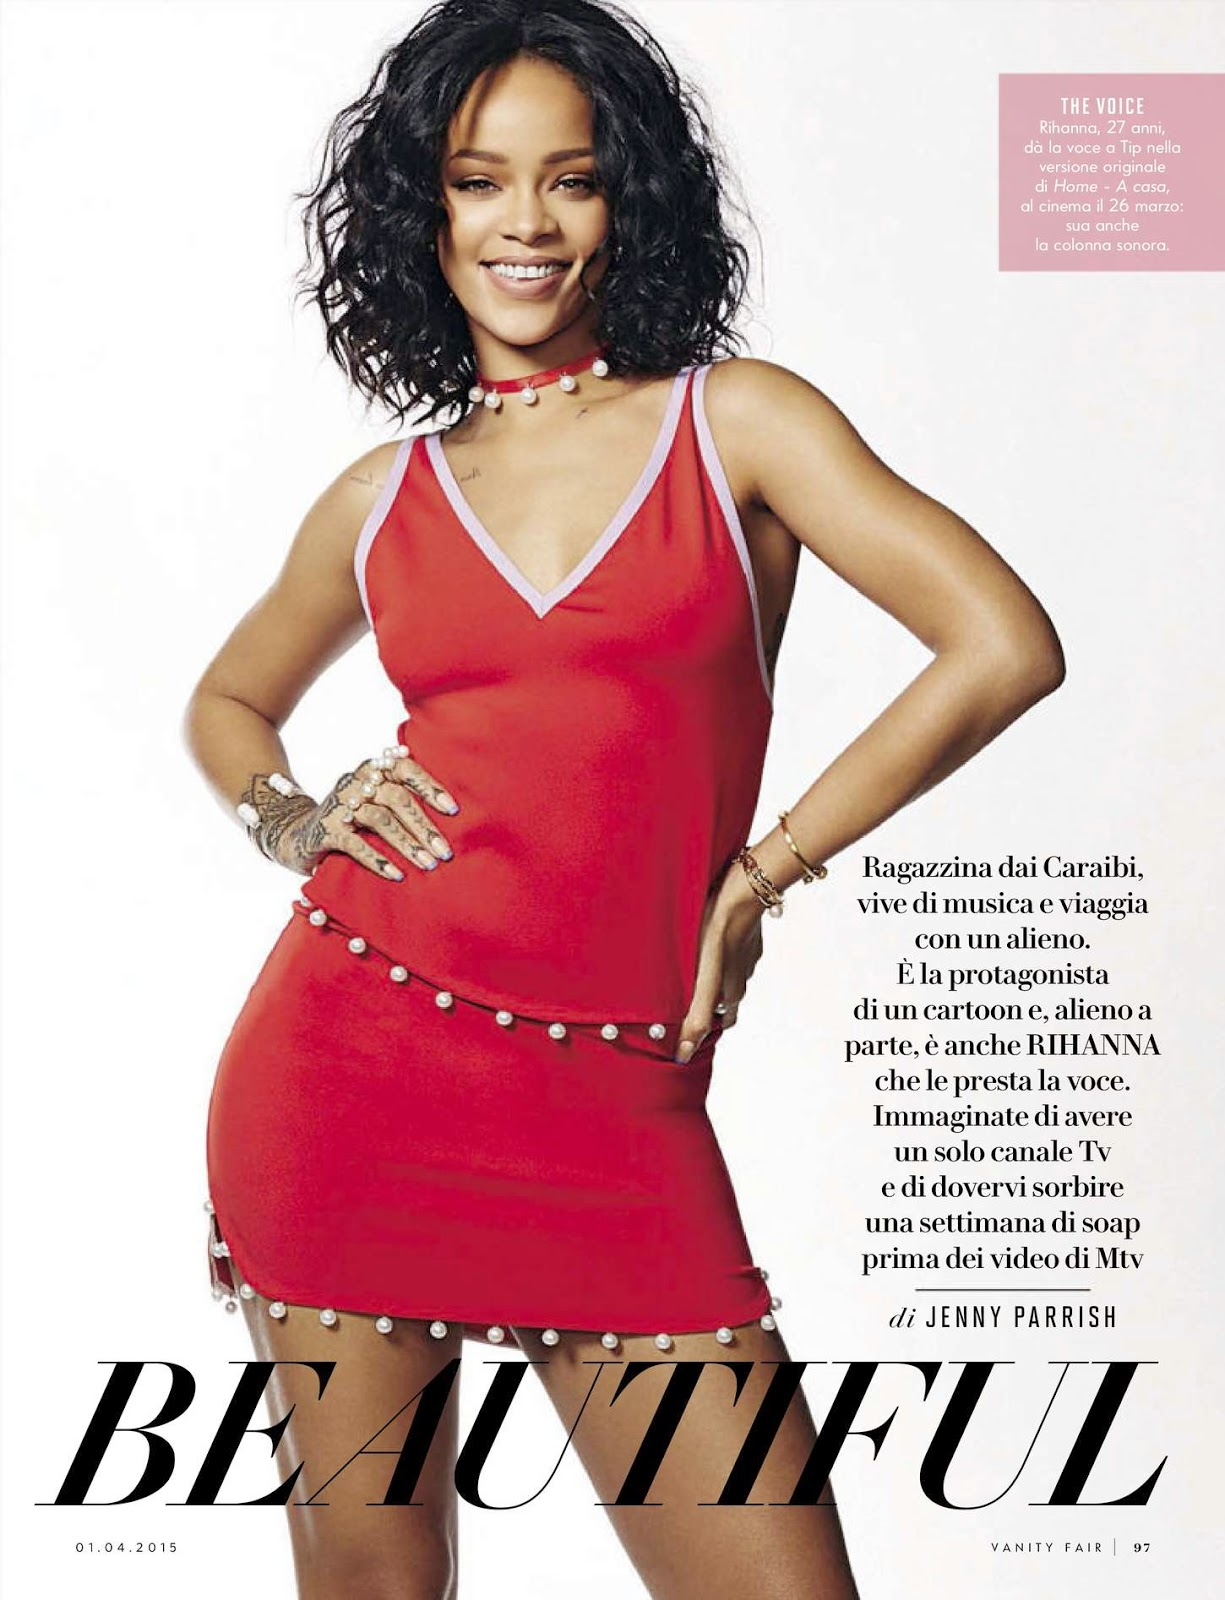 Singer @ Rihanna - Vanity Fair Italy, April 2015